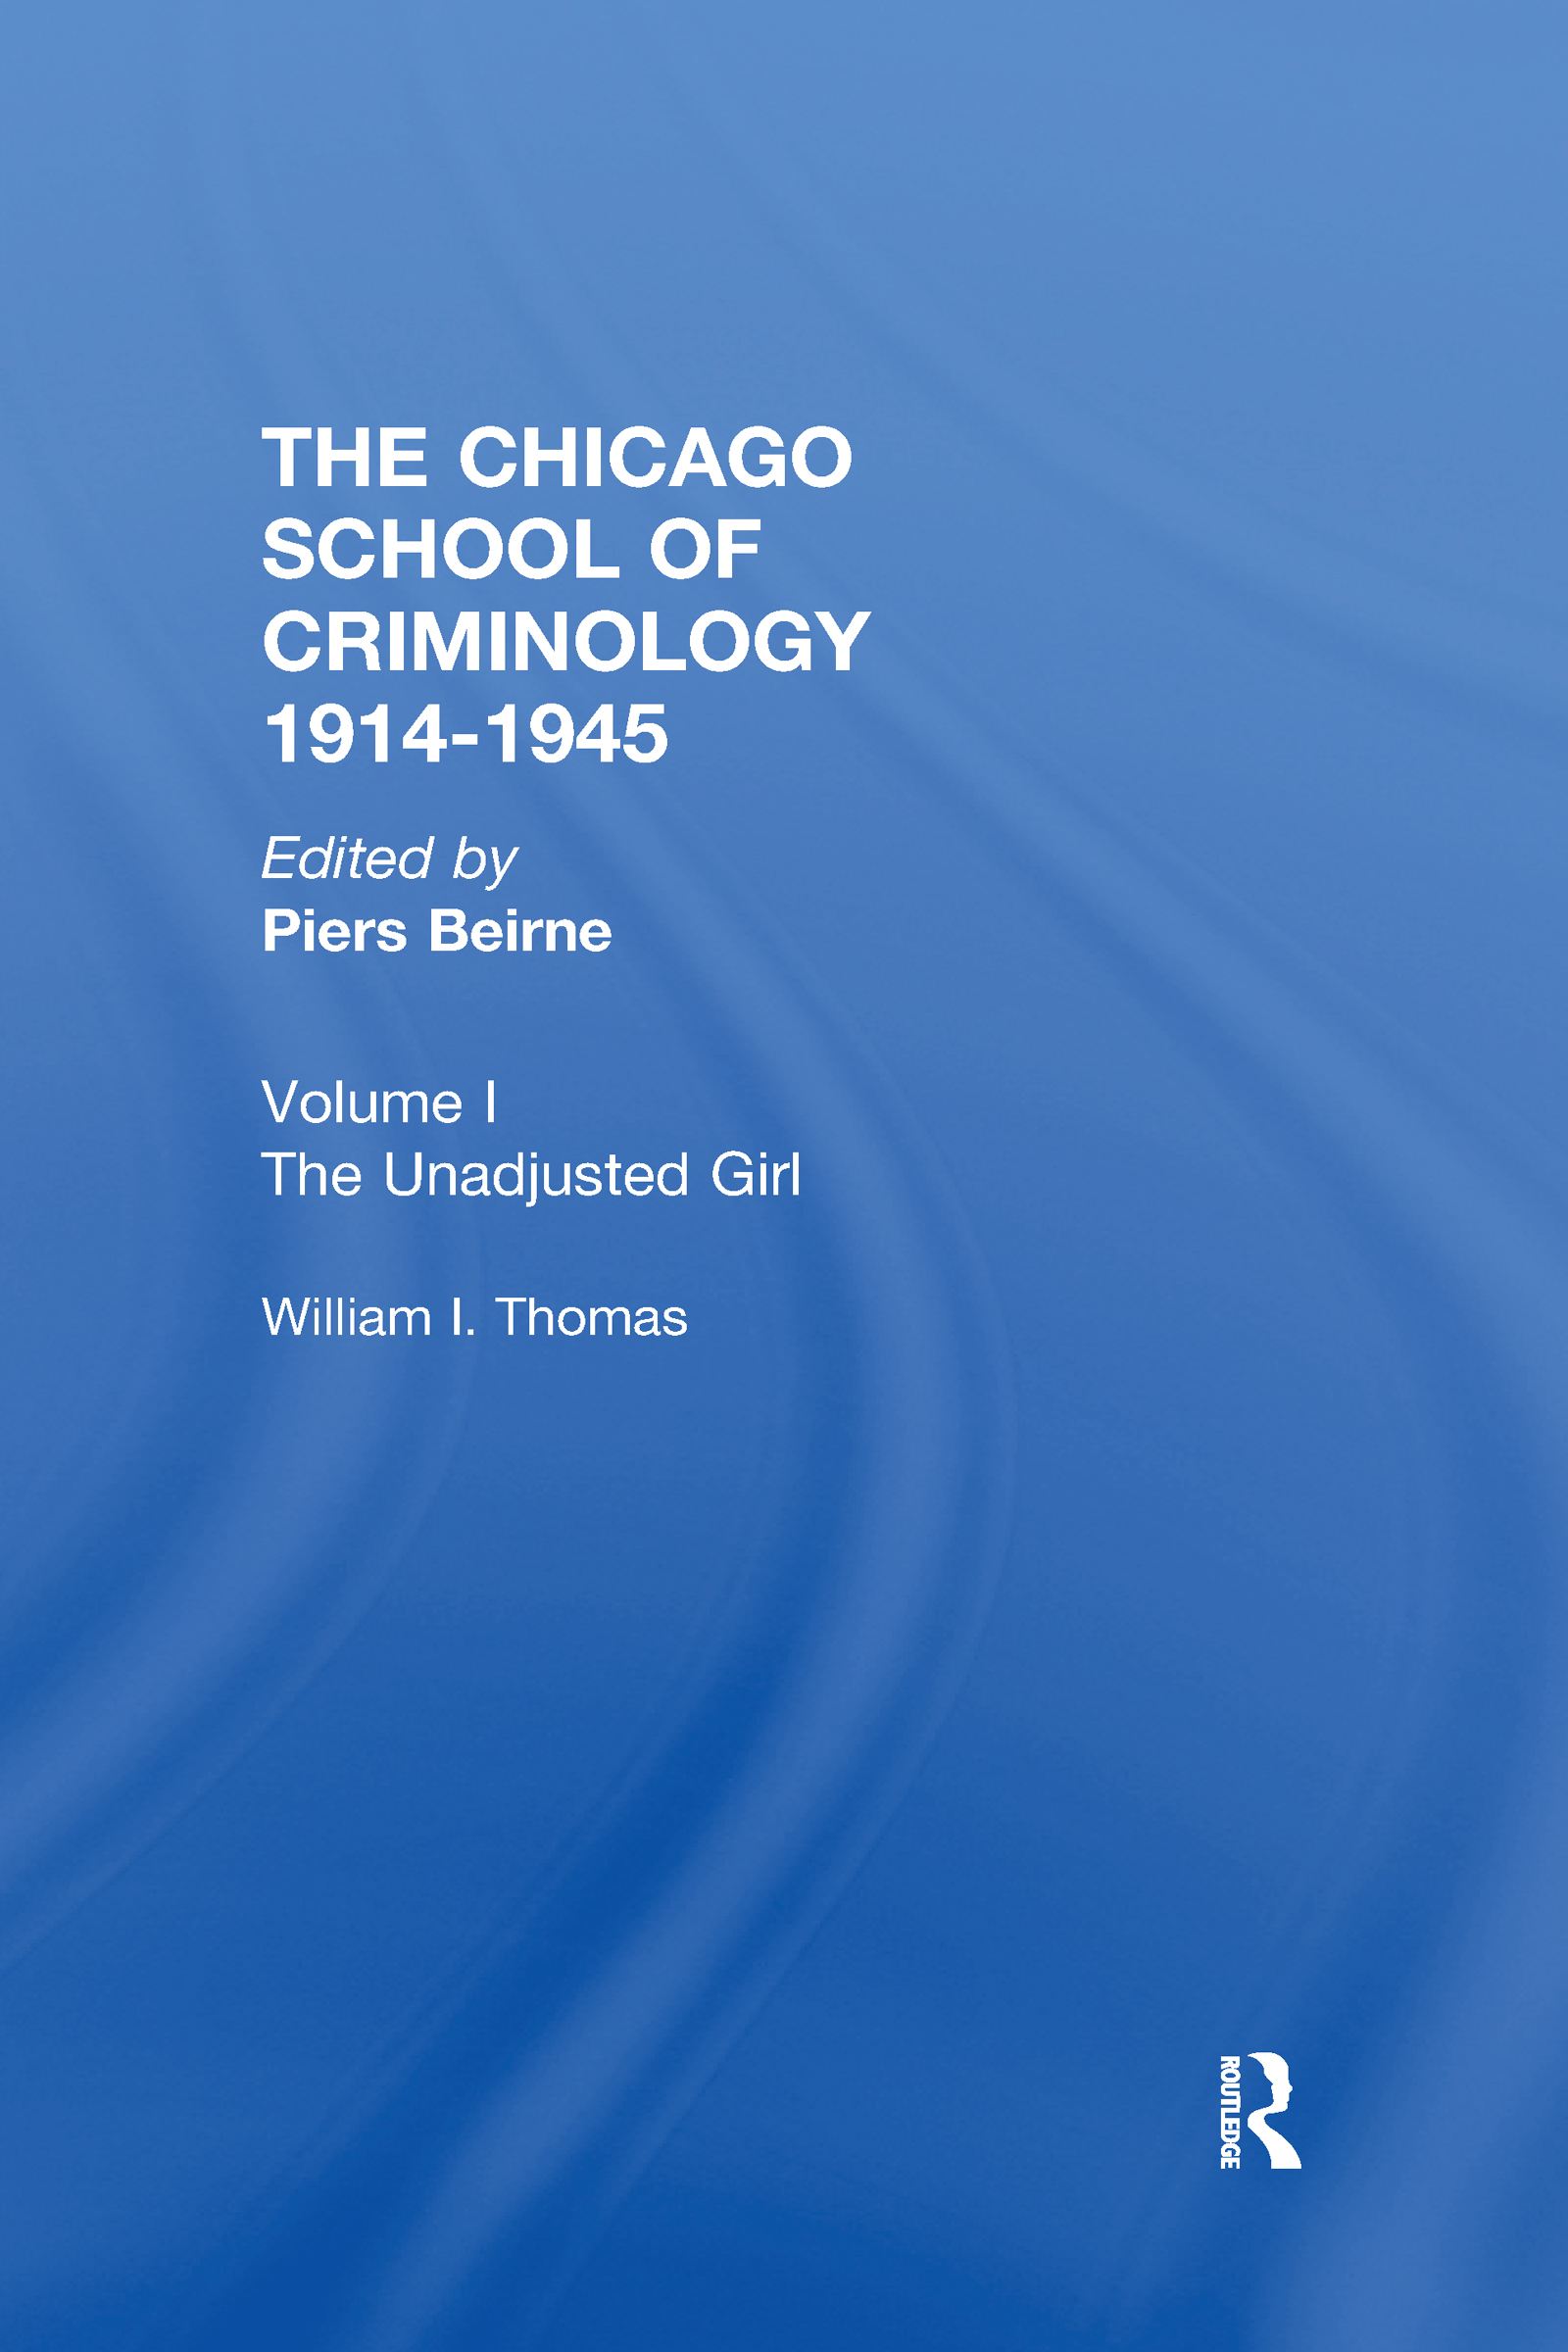 Chicago School Criminology Vol 1: The Unadjusted Girl by William I. Thomas book cover